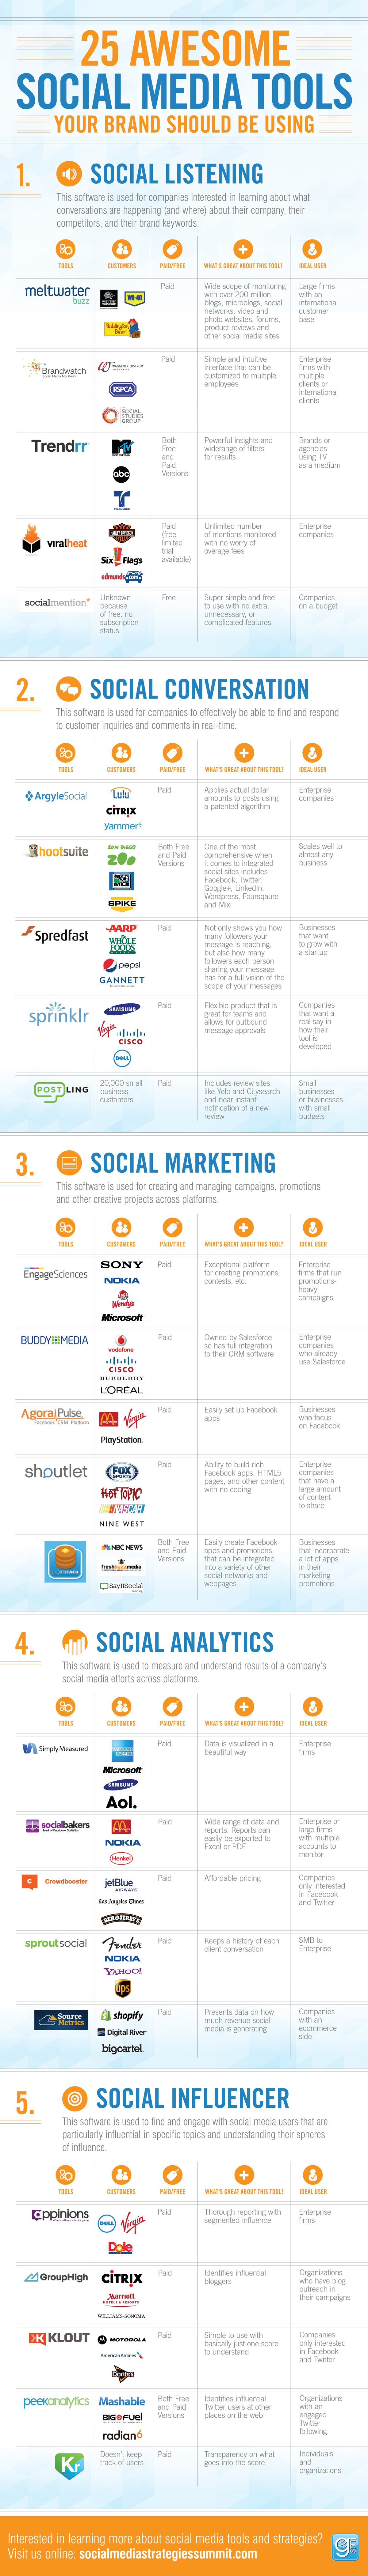 25-Social-Media-Tools-Infographic